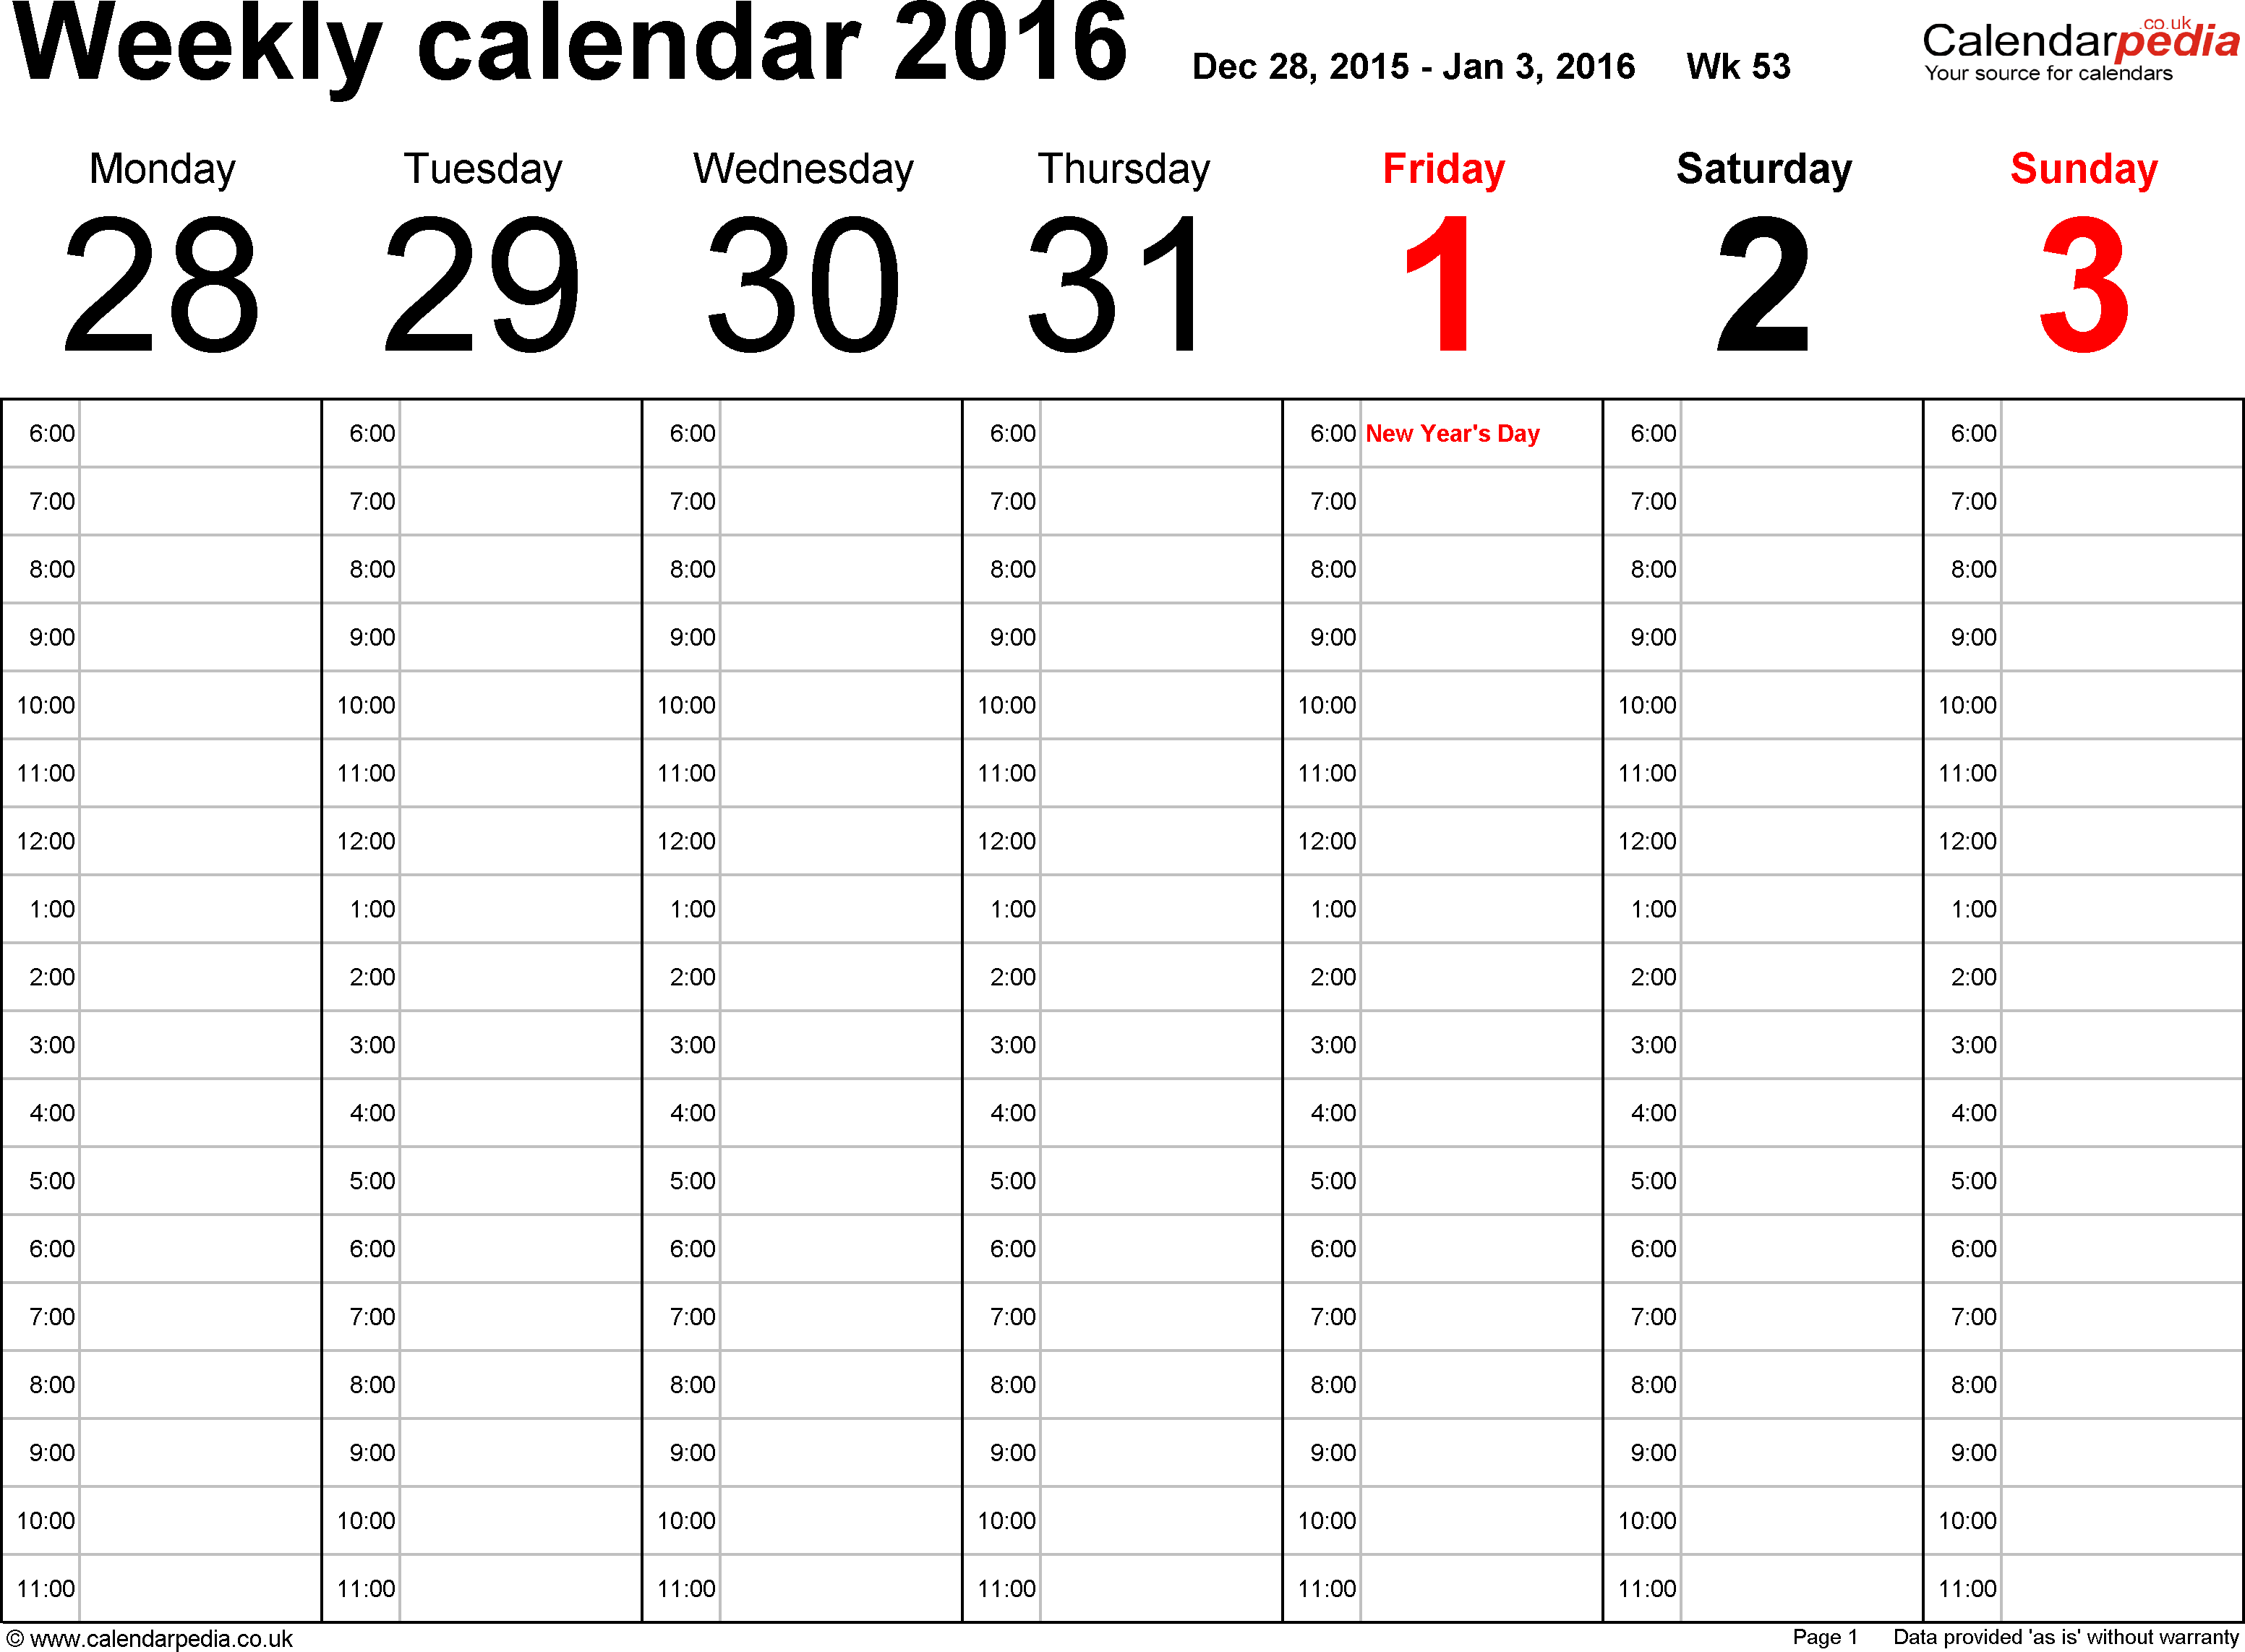 weekly calendar 2016 uk printable templates for pdf pdf template 1 weekly calendar 2016 landscape orientation 53 pages 1 calendar